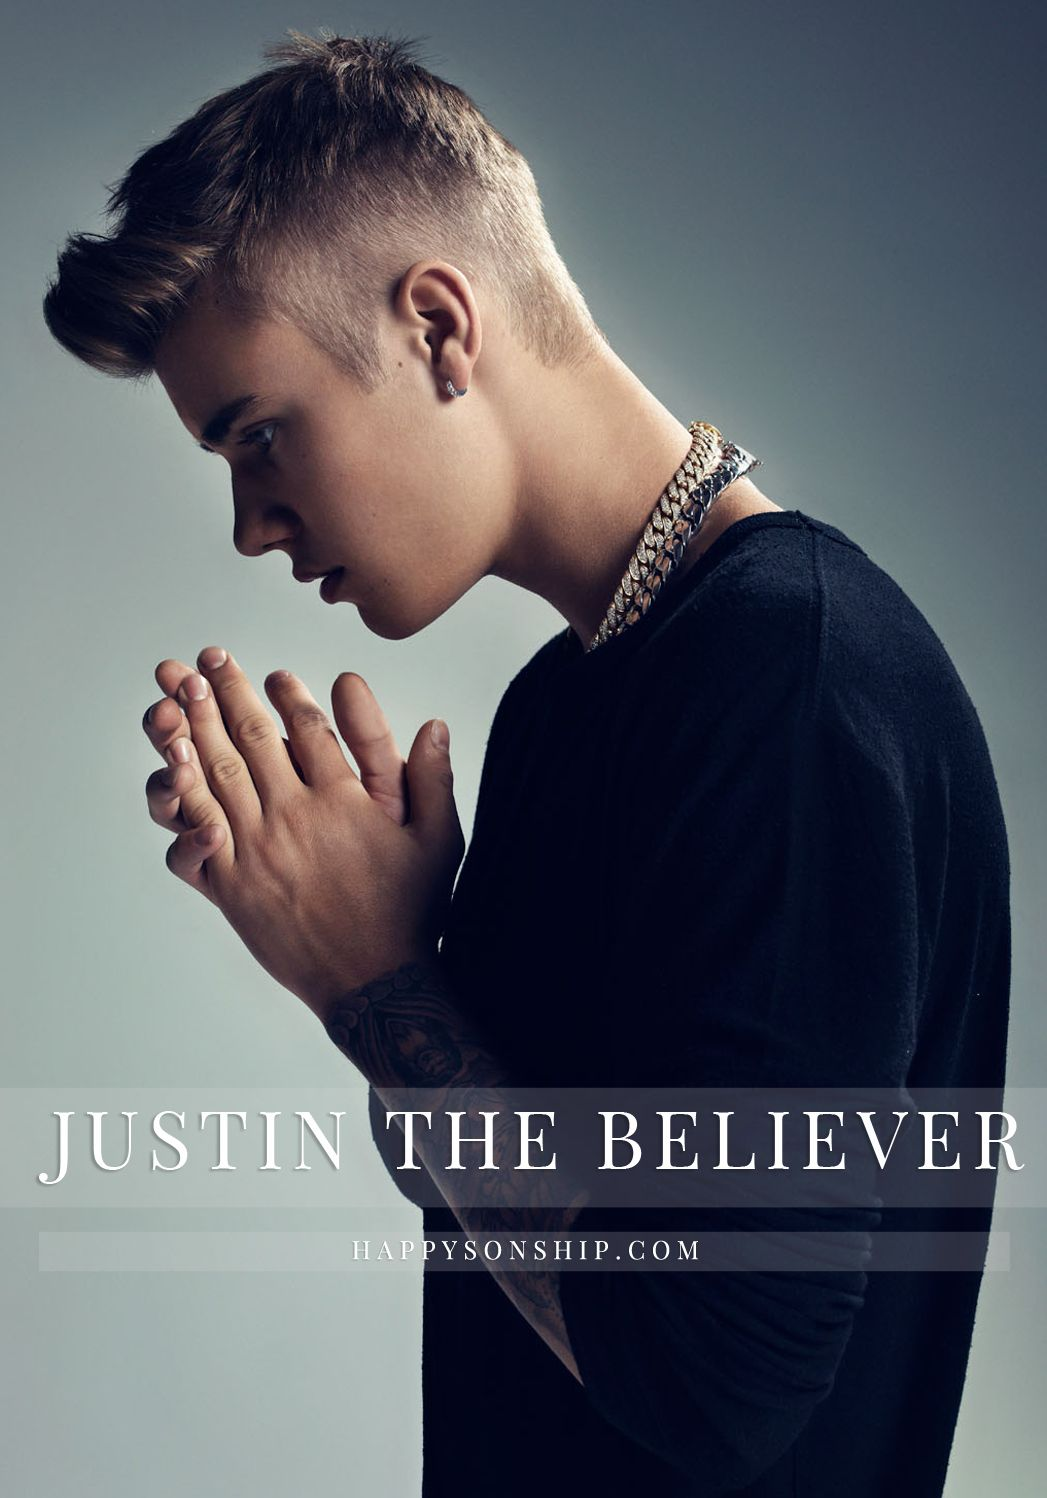 Justin the Believer | Happy Sonship | Justin bieber ...